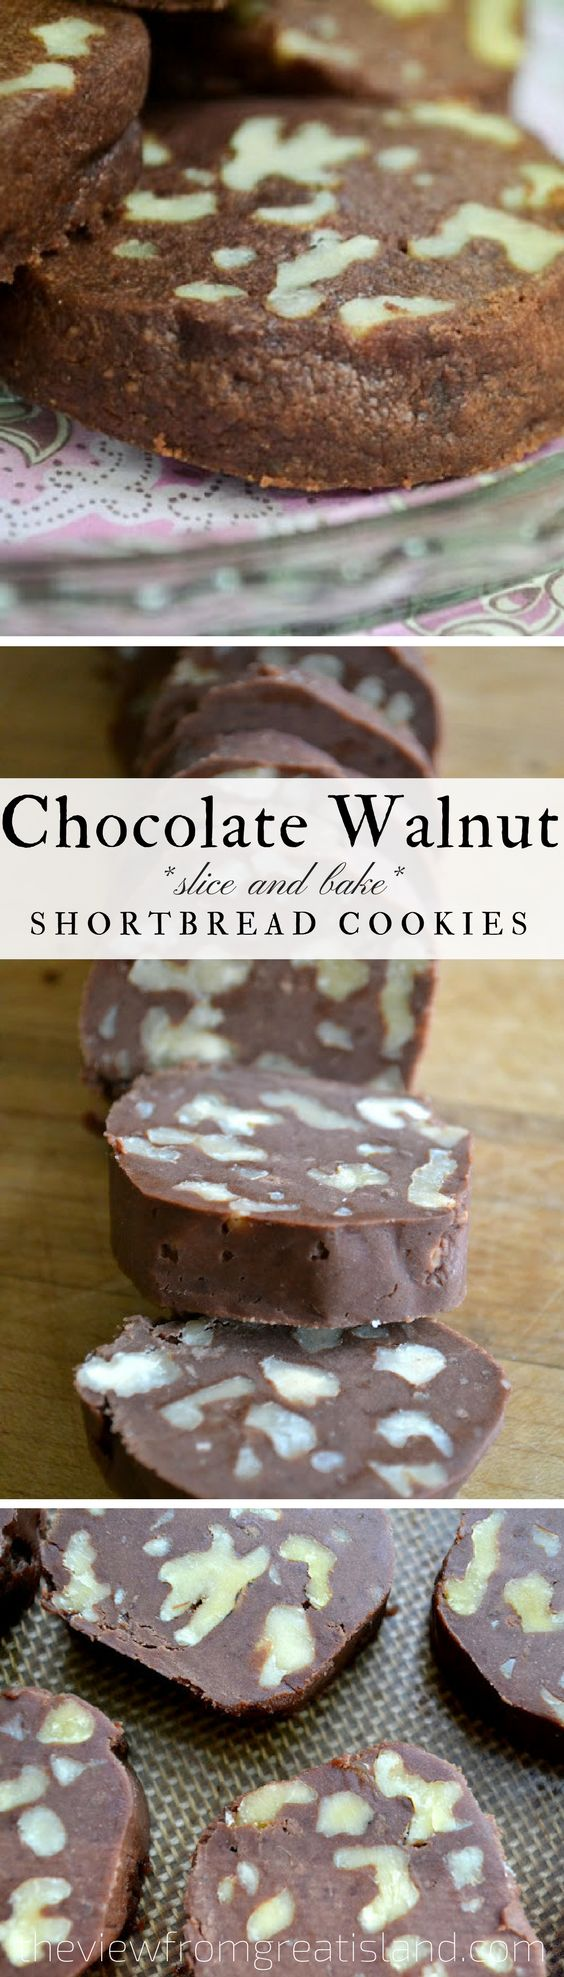 Chocolate Walnut Shortbread Cookies ~ if a cookie and a brownie had a baby they might come up with a delicious buttery cookie like this! #shortbread #cookies #sliceandbakecookies #walnutcookies #chocolatecookies #holidaycookies #Chrismtascookies #shortbreadcookies